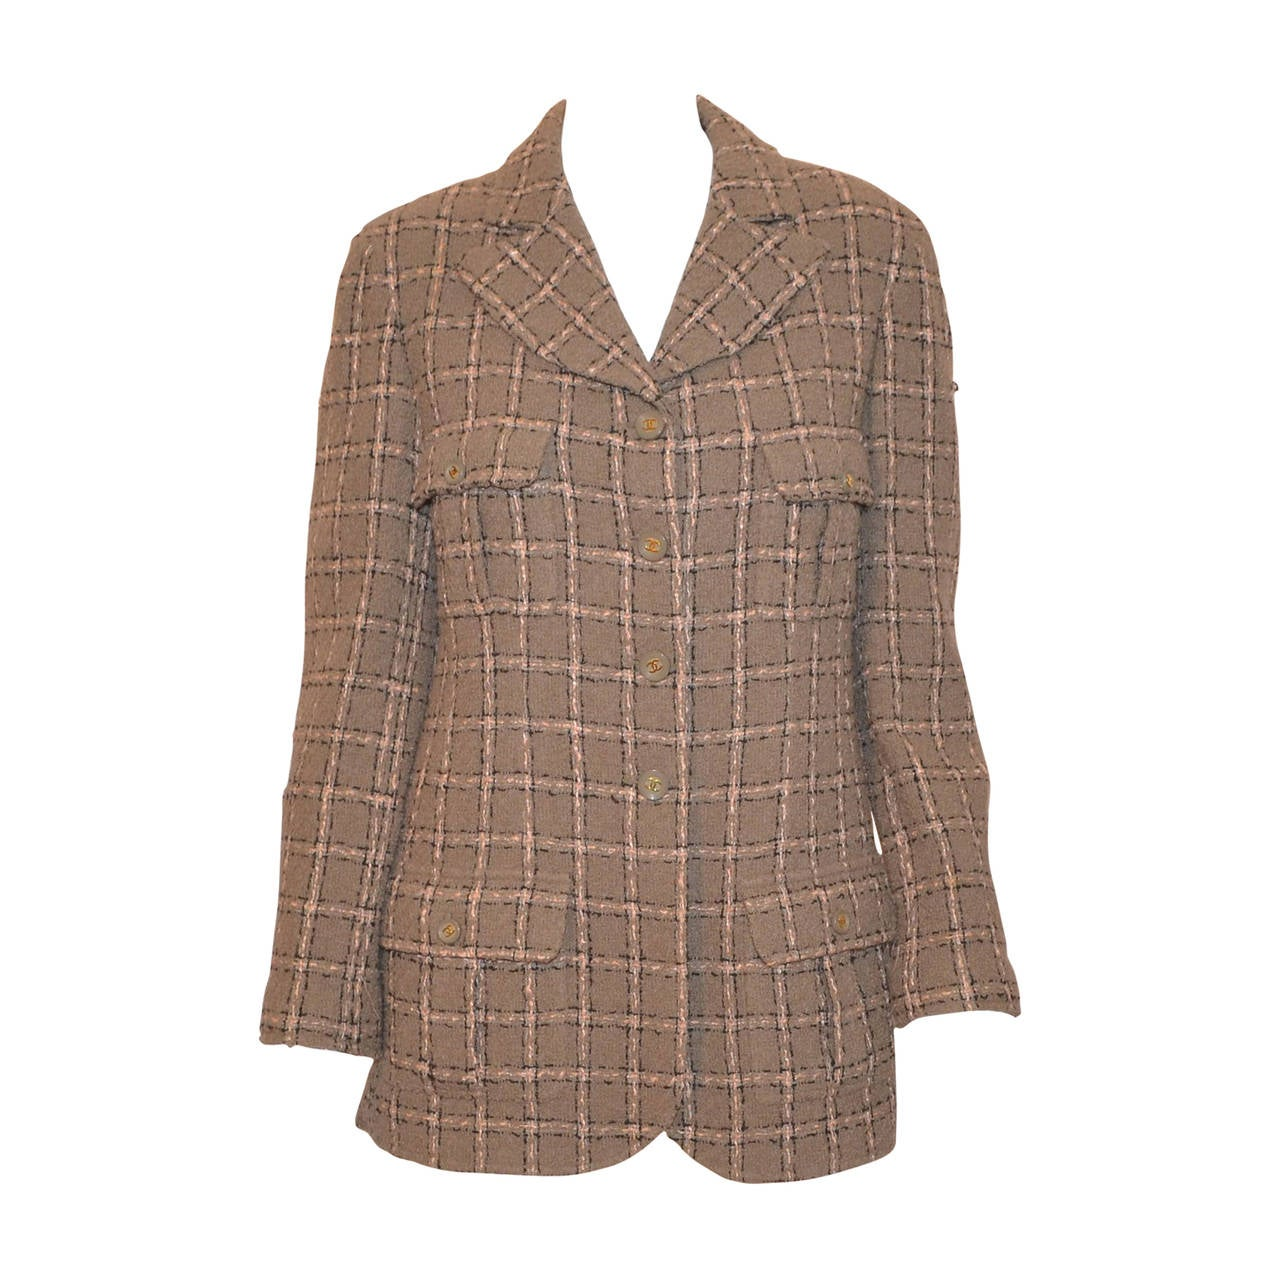 Chanel 1995 A Olive Taupe Tweed Jacket